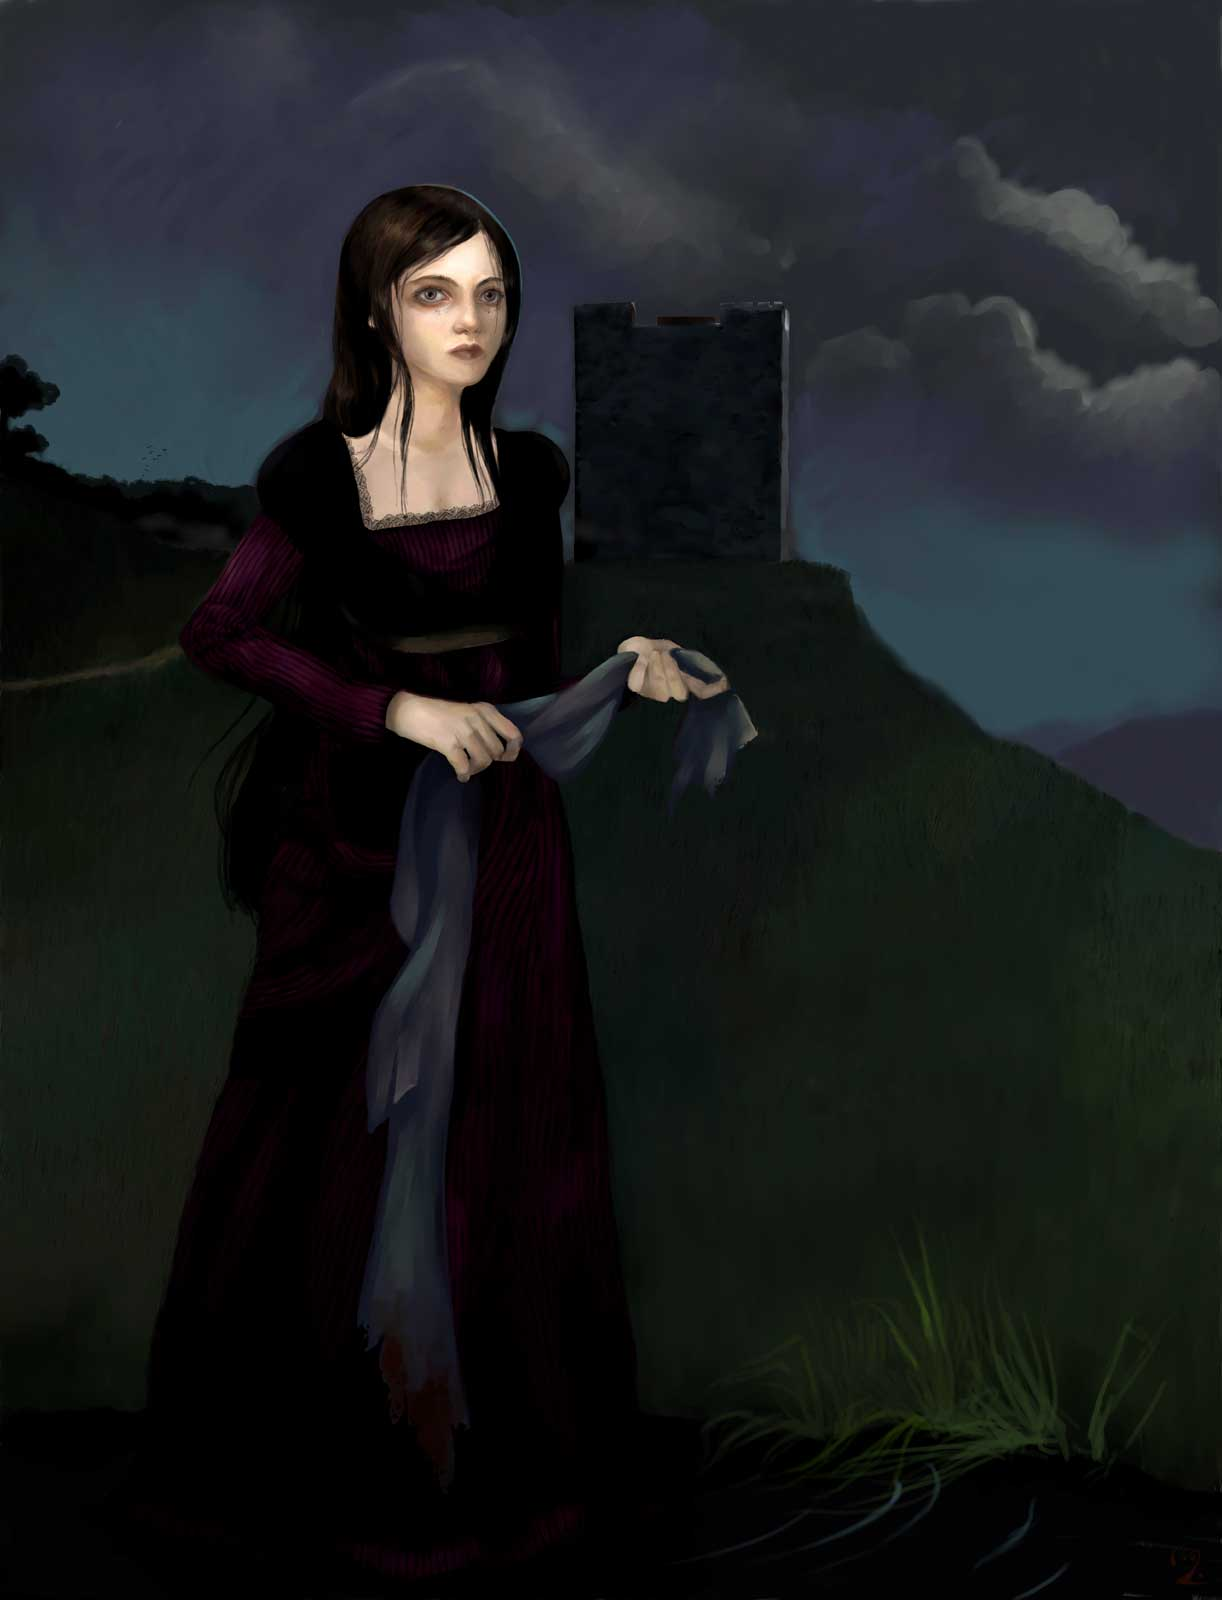 A ghost in purple dress washing a bloody shroud by the river as a death omen.